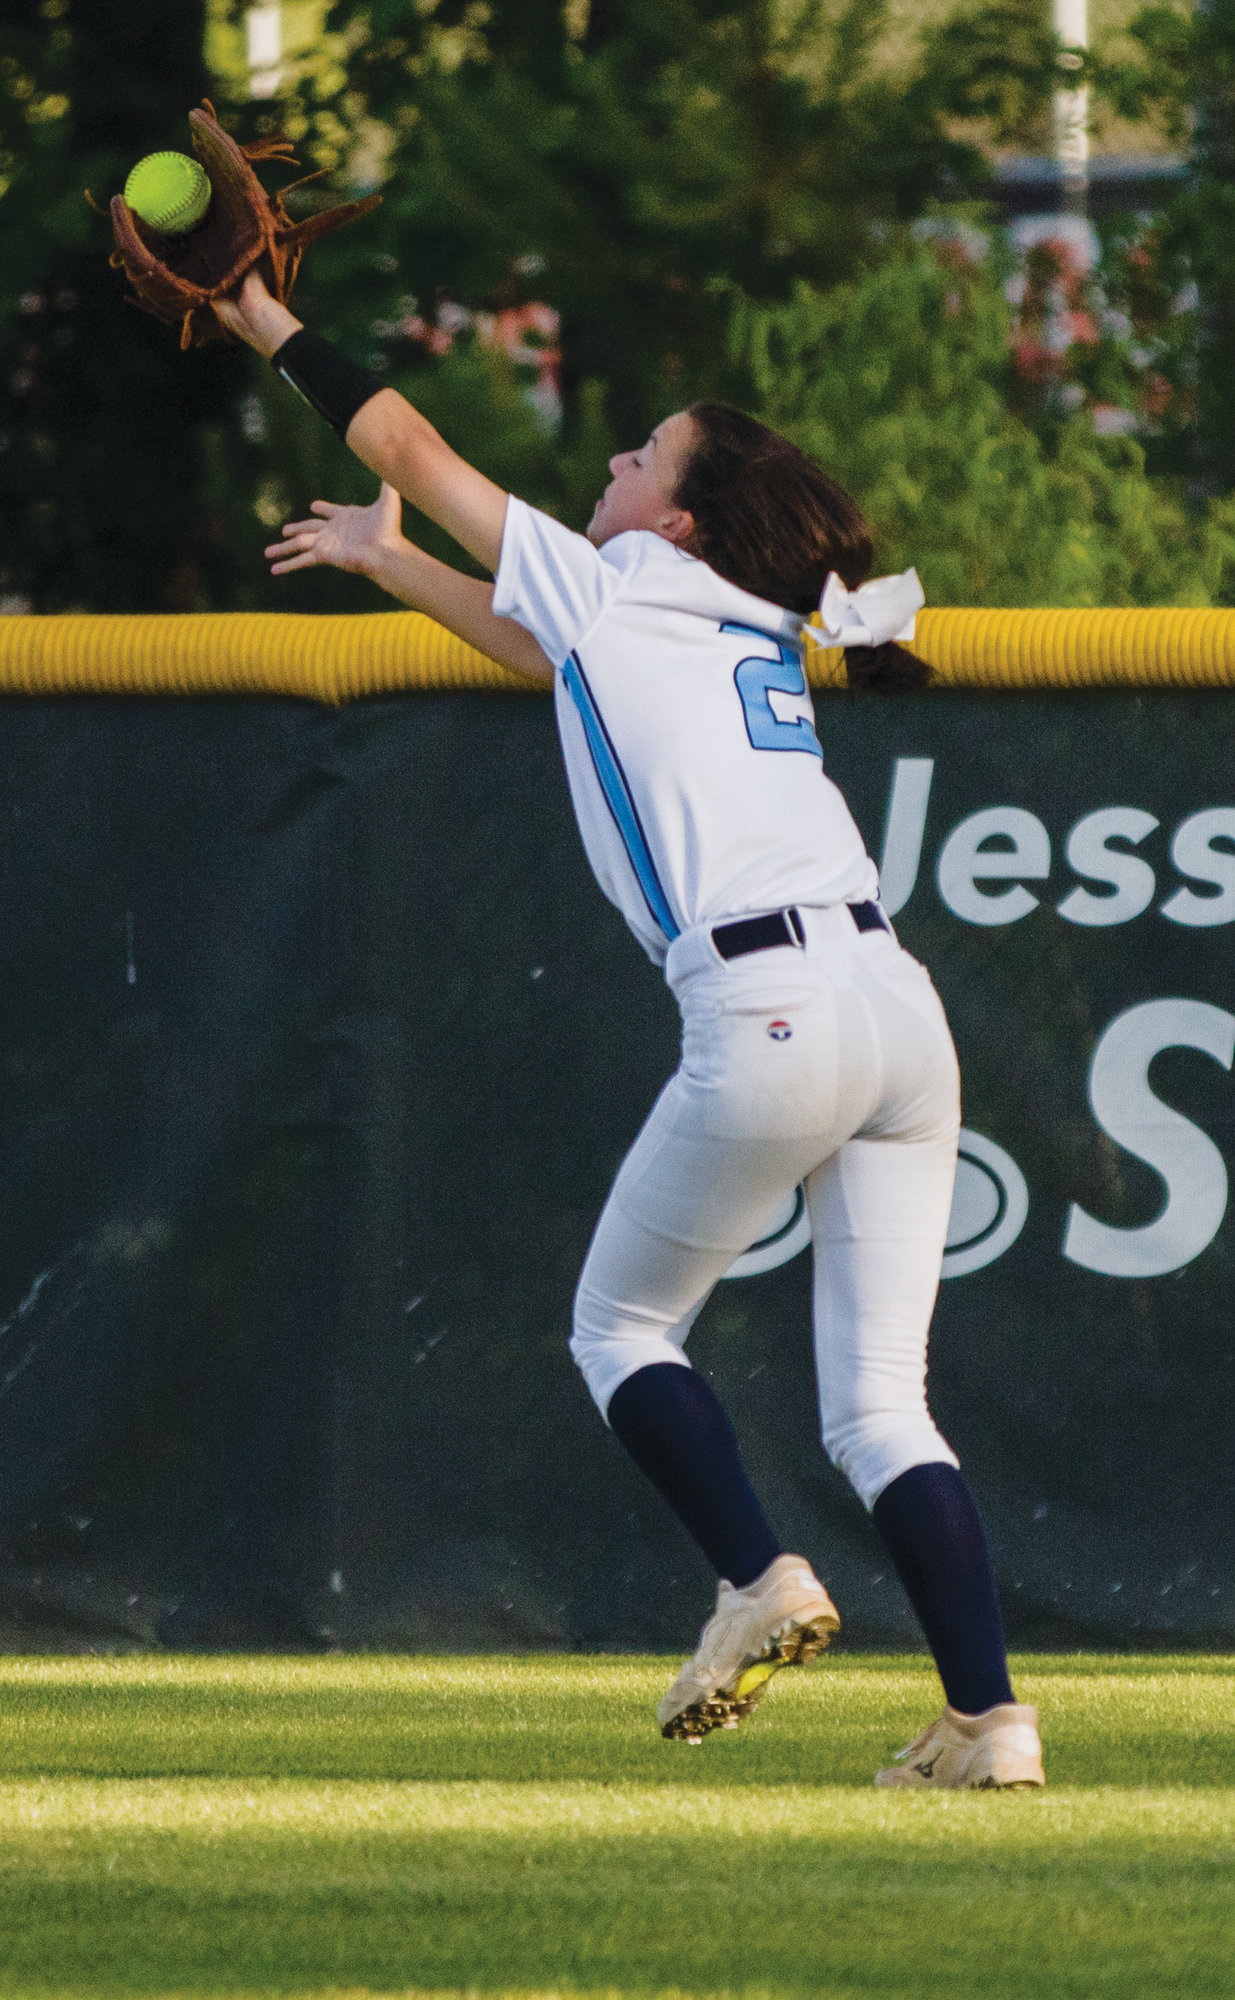 MICAH GREEN / THE SUMTER ITEM  Wilson Hall rightfielder Ansleigh Epps makes a catch in the Lady Barons' 7-0 loss to Cardinal Newman on Tuesday at the CN field in Columbia in Game 2 of the SCISA 3A state championship series.